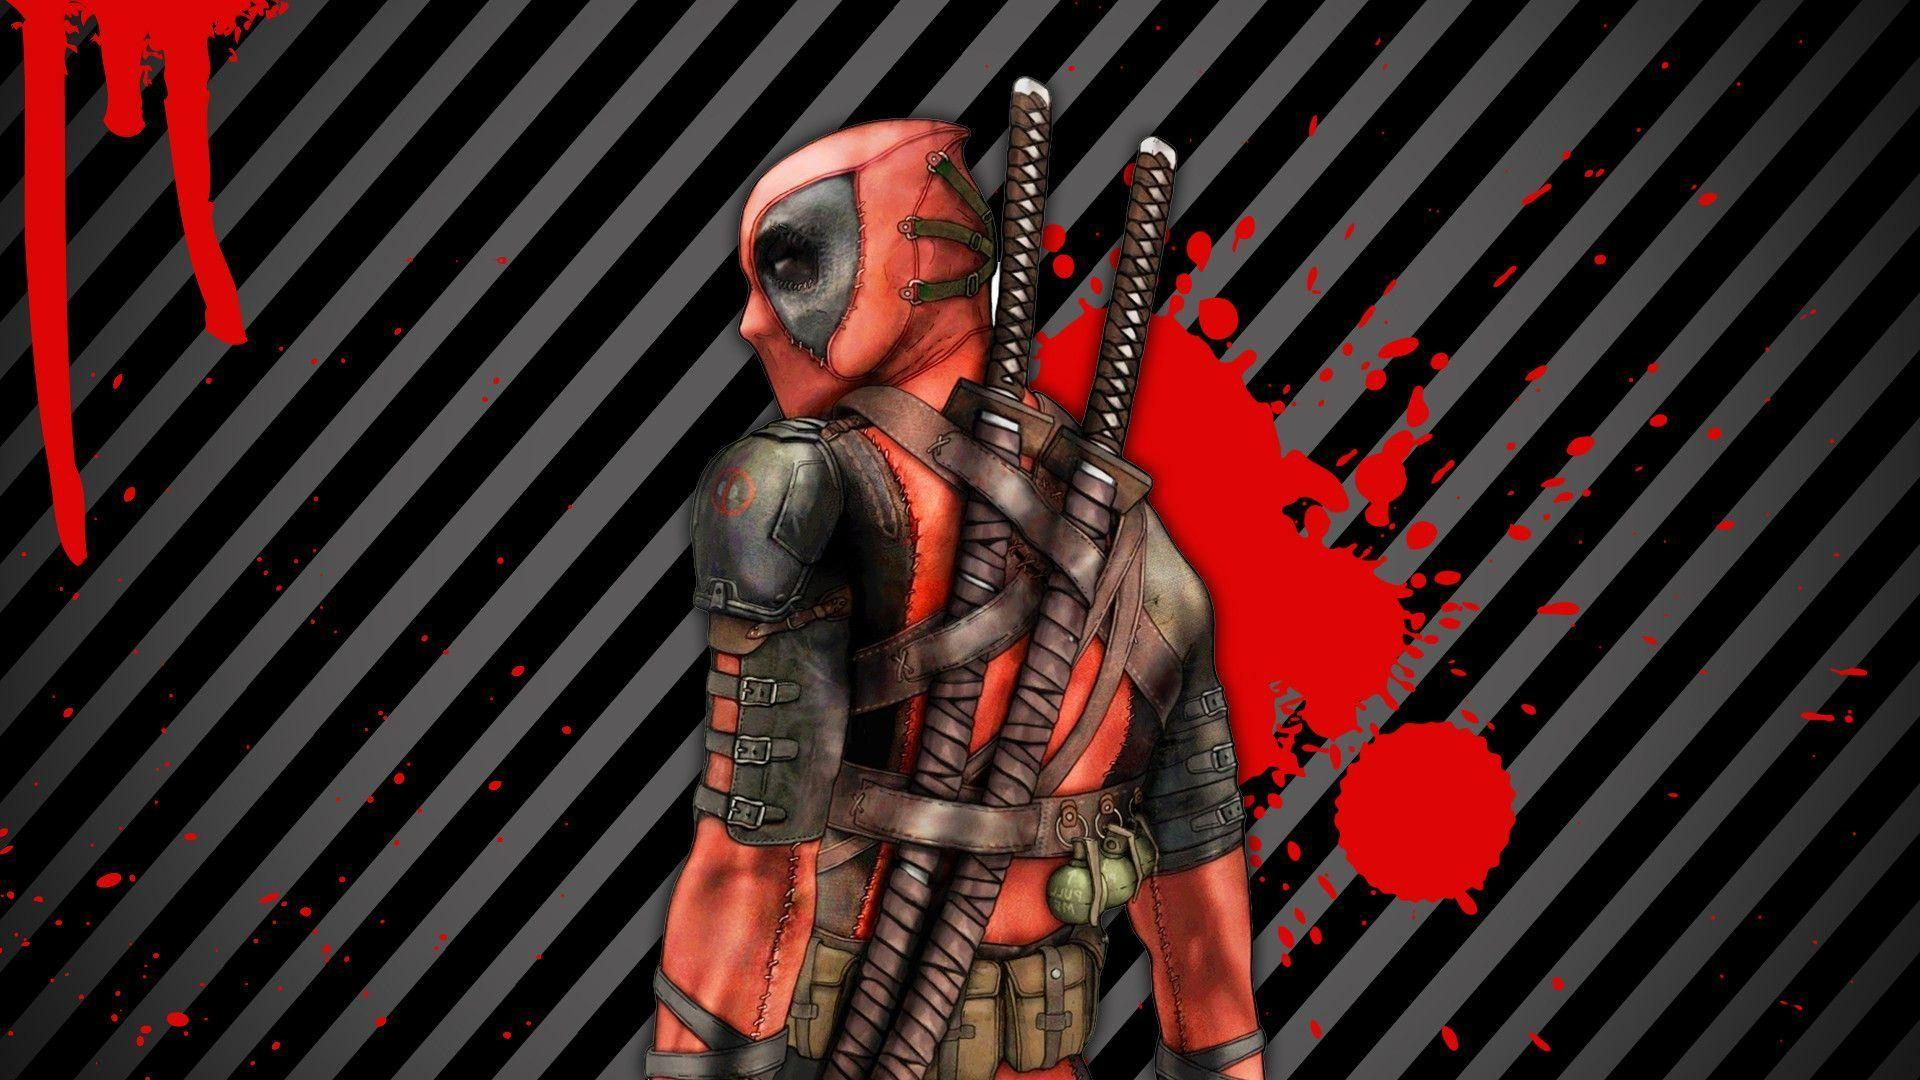 Deadpool Computer Wallpapers, Desktop Backgrounds 1920x1080 Id: 411169